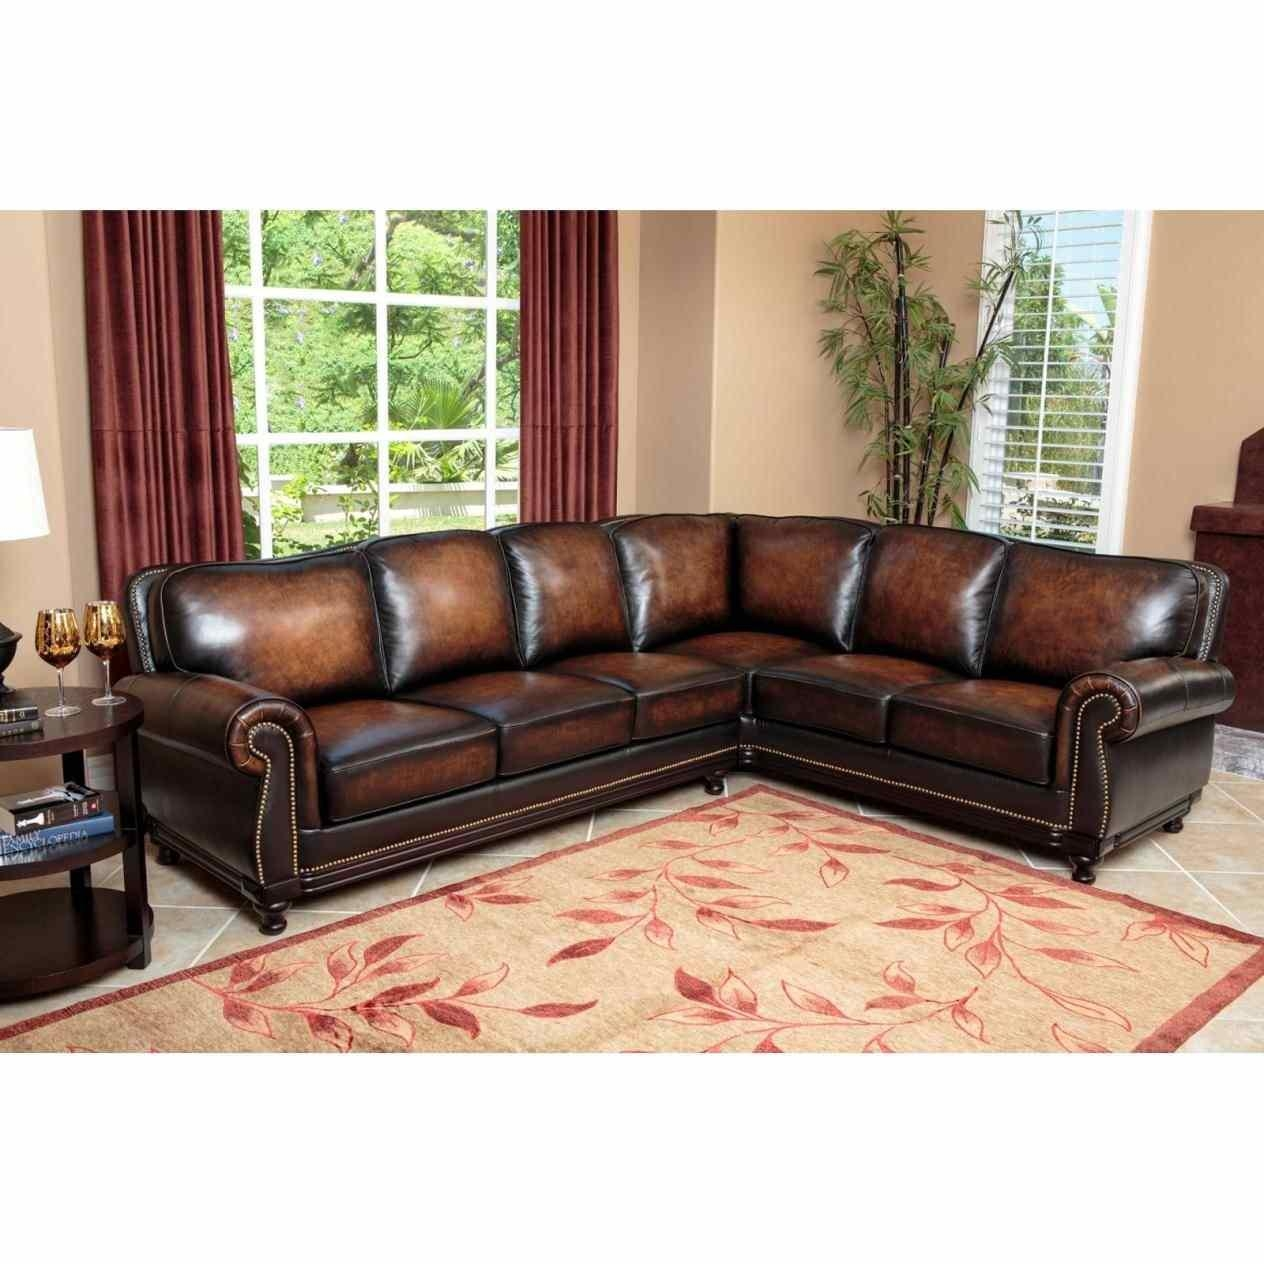 Brown Leather Sectional Sofas | Cathygirl Intended For Oval Sofas (View 8 of 21)